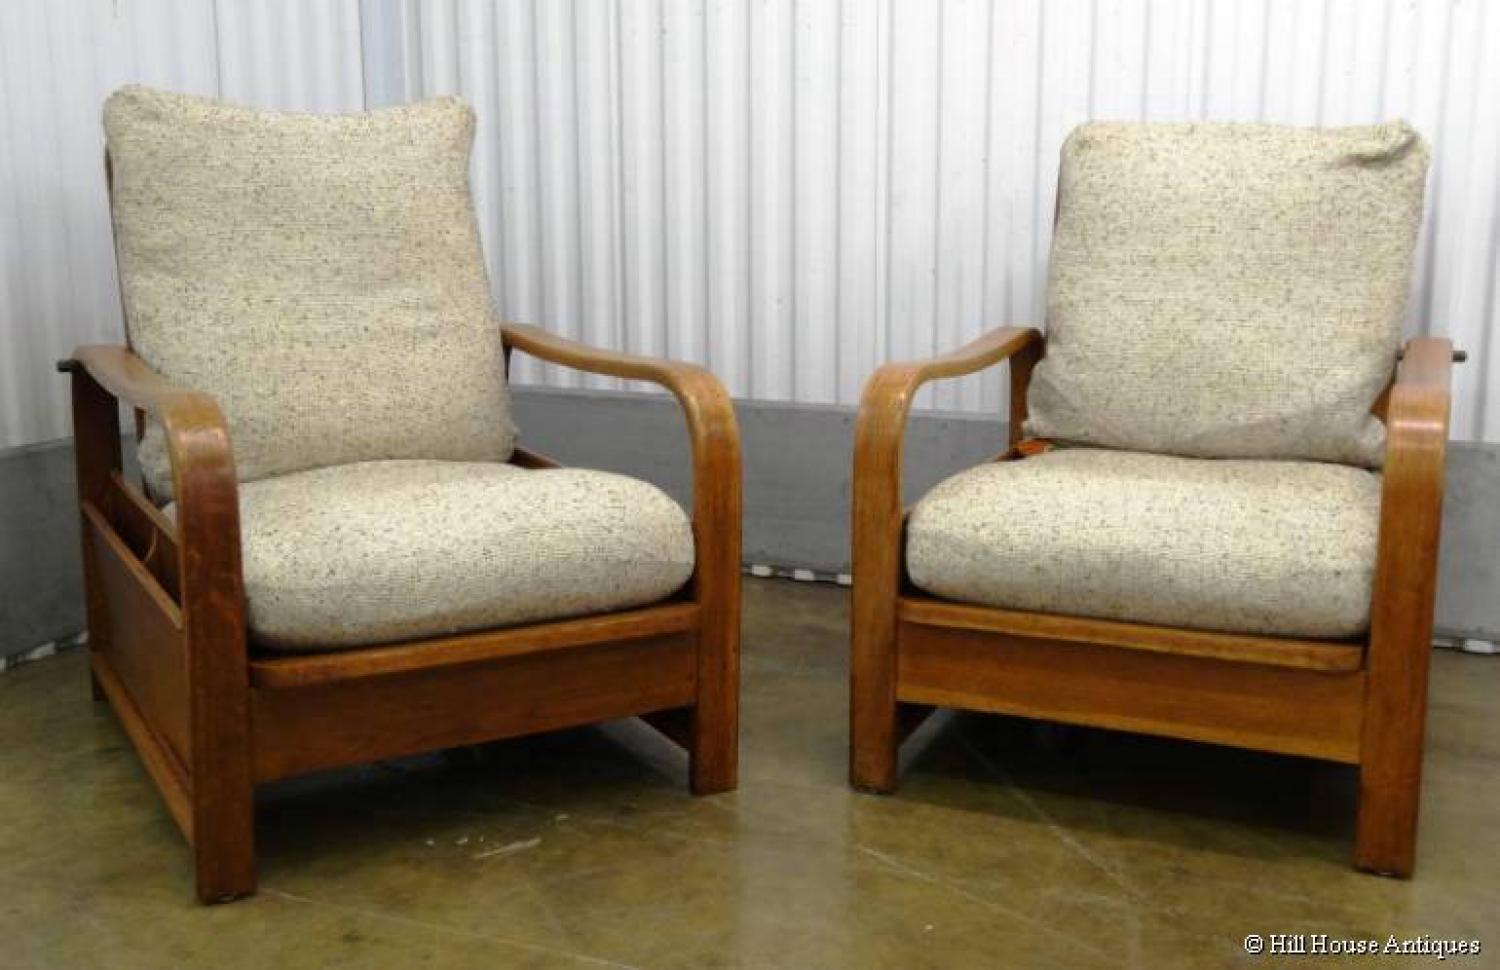 Pair of Heals Modernist magazine book chairs